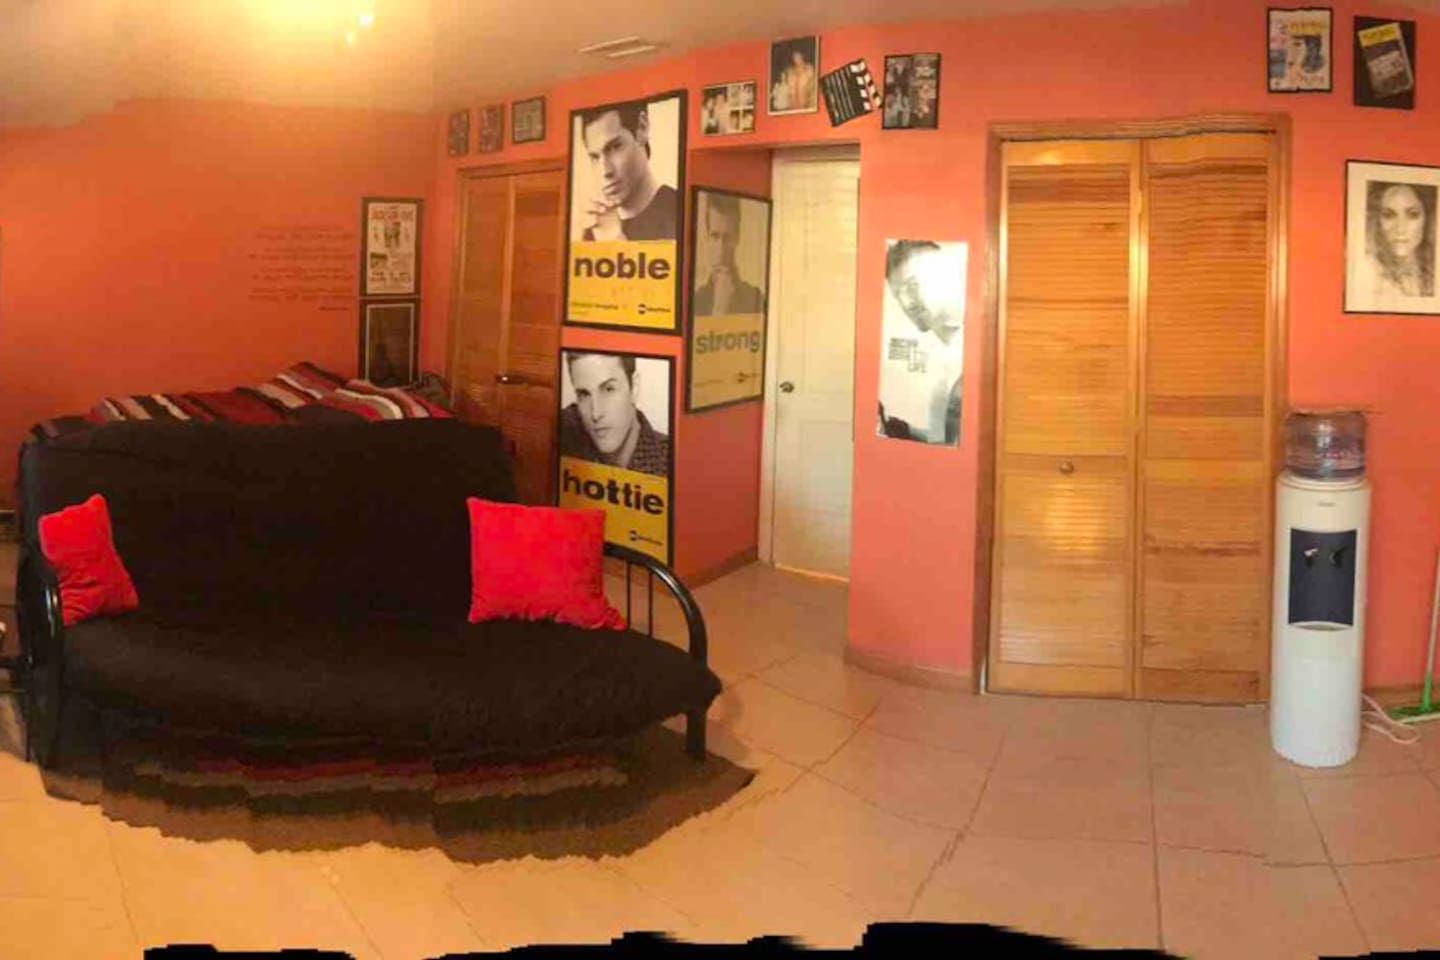 Large Studio with Private Entrance  1 Queen Bed, 1 Bunkbed, Private Bathroom, Mini Fridge, Microwave